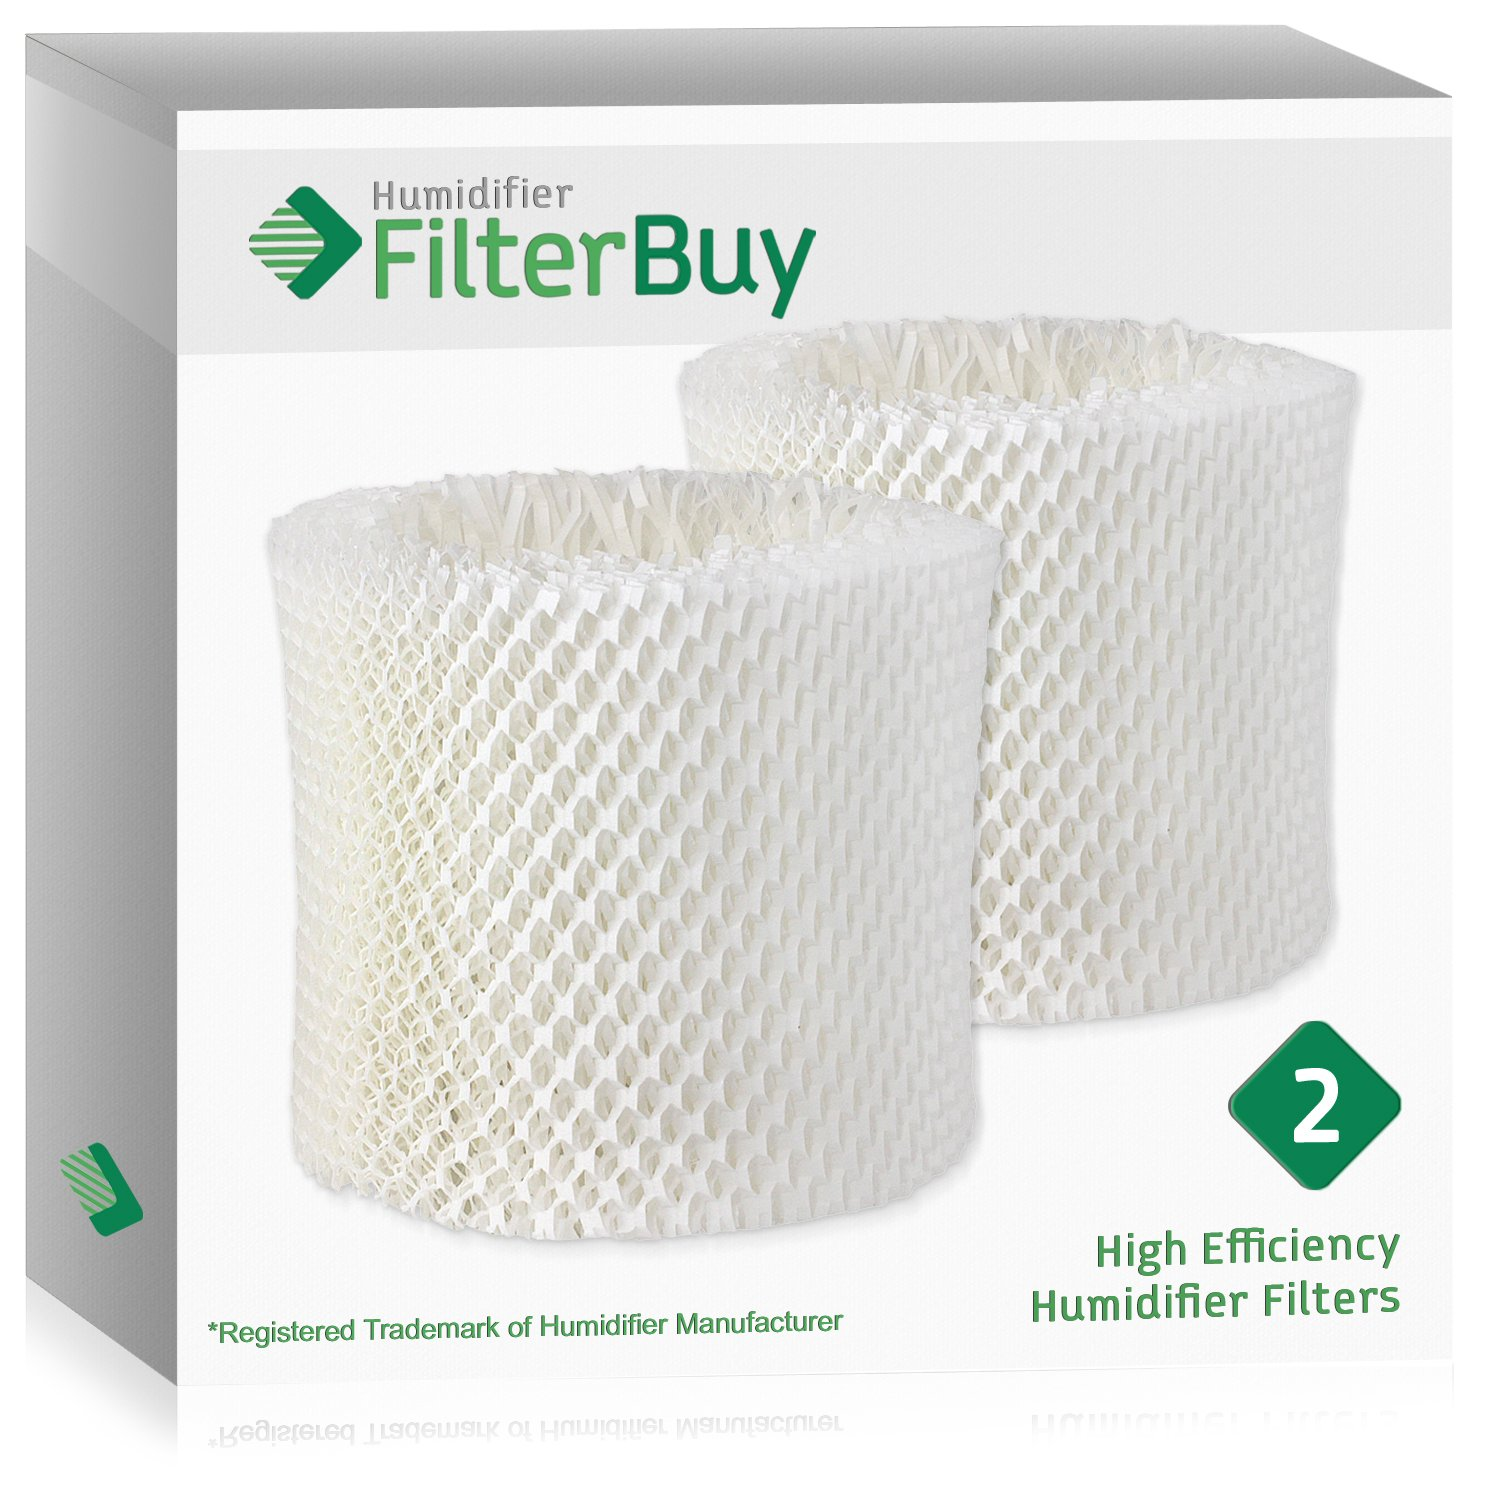 2 - WF2 Kaz & Vicks Replacement Humidifier Wick Filters. Designed by FilterBuy in the USA.